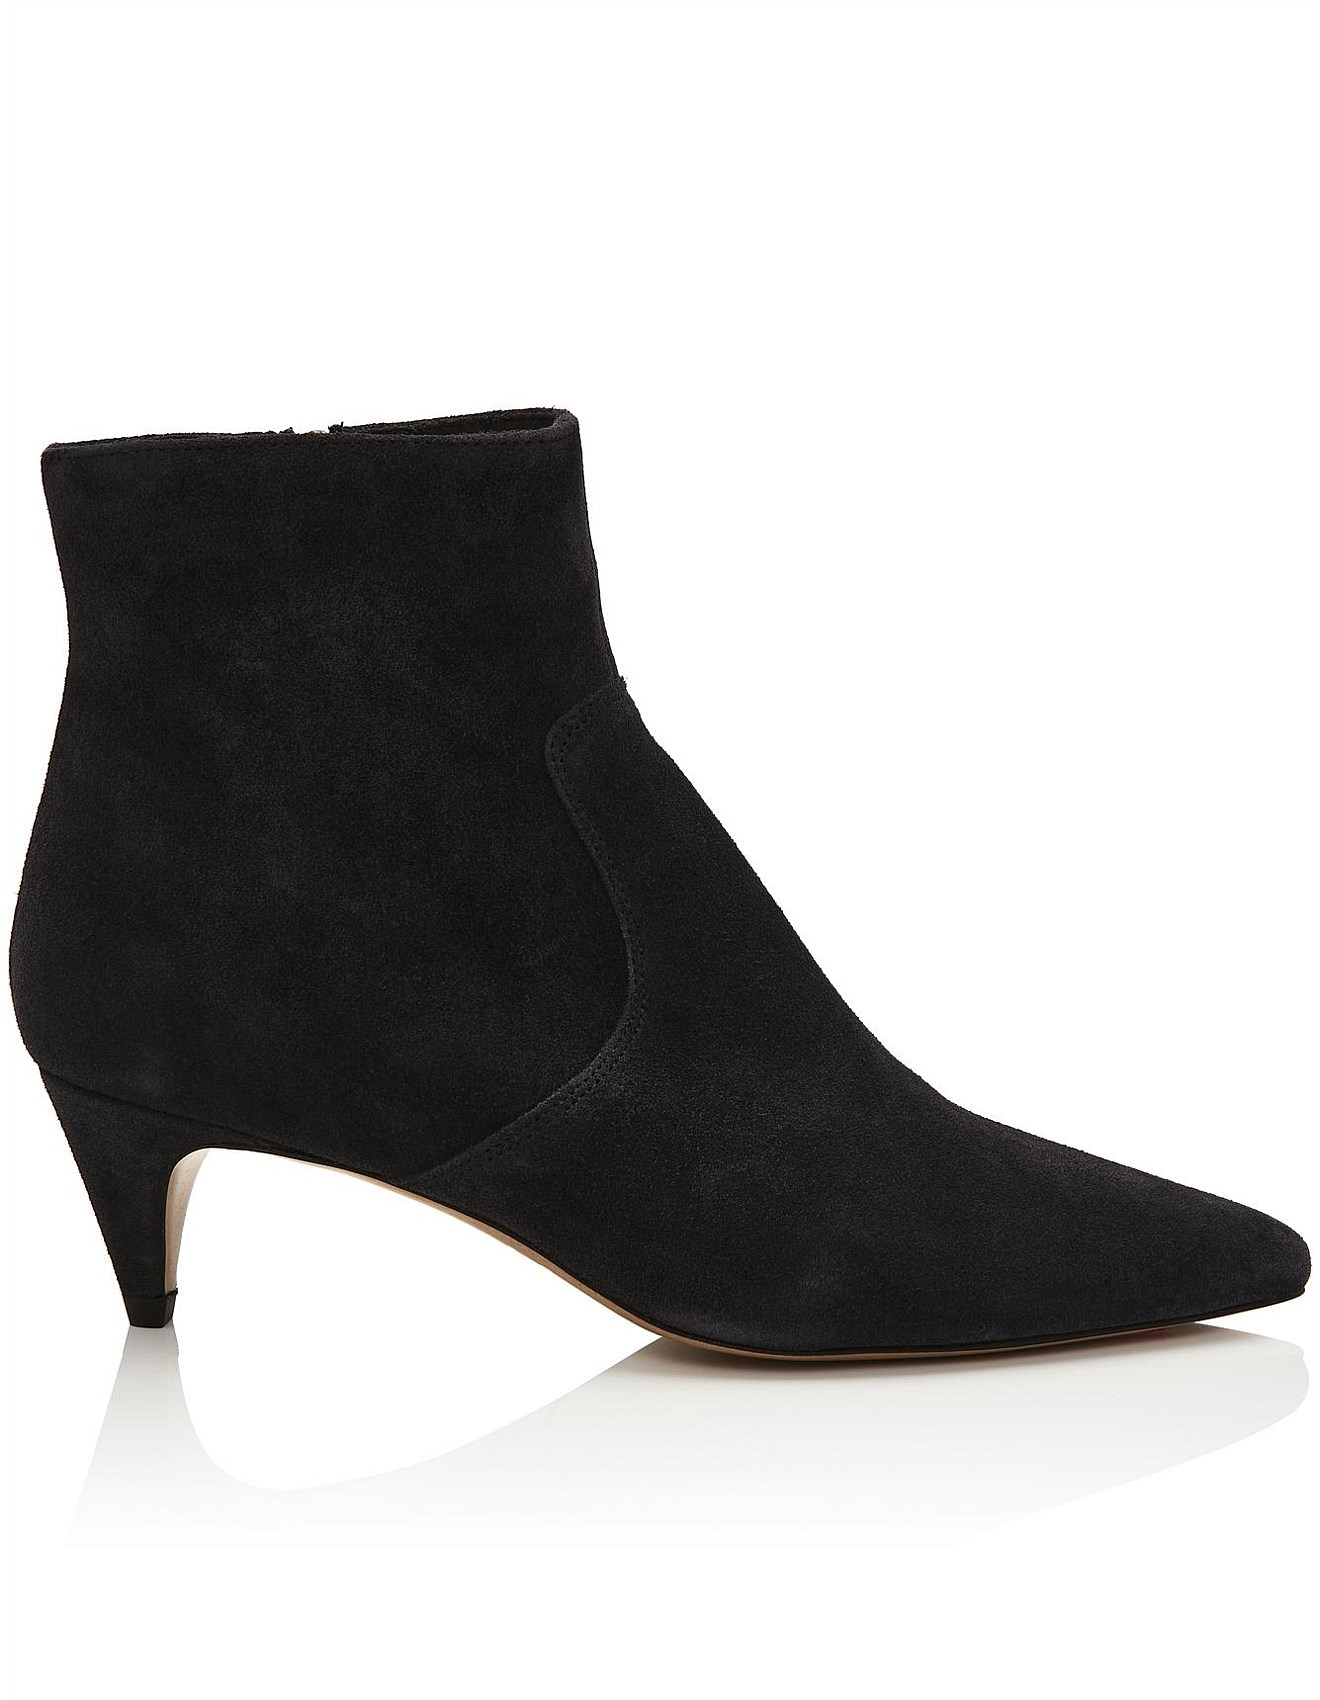 DERST faded black suede heeled ankle boots